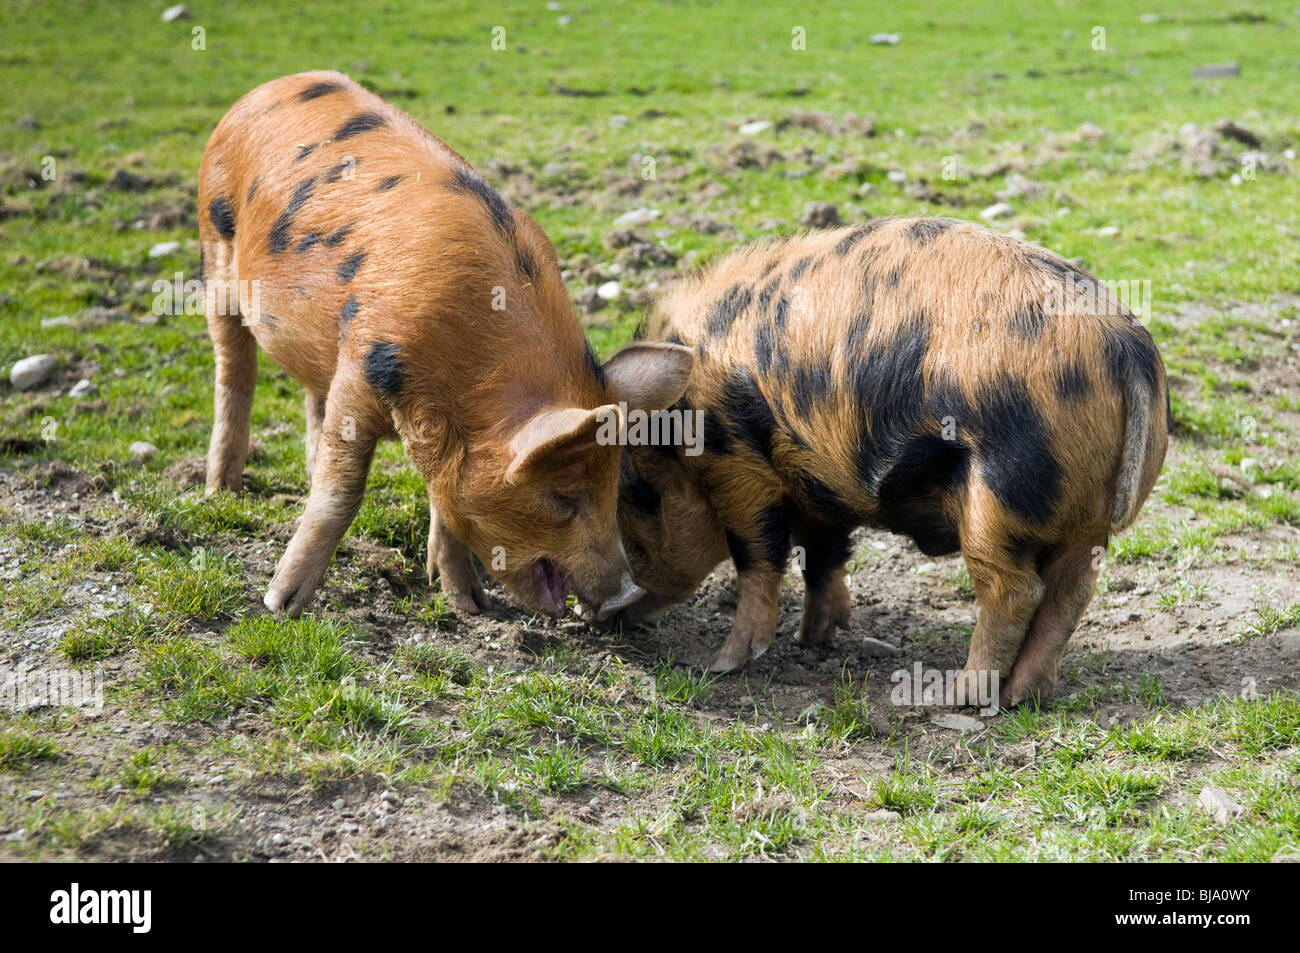 cross breed pig stockfotos cross breed pig bilder alamy. Black Bedroom Furniture Sets. Home Design Ideas